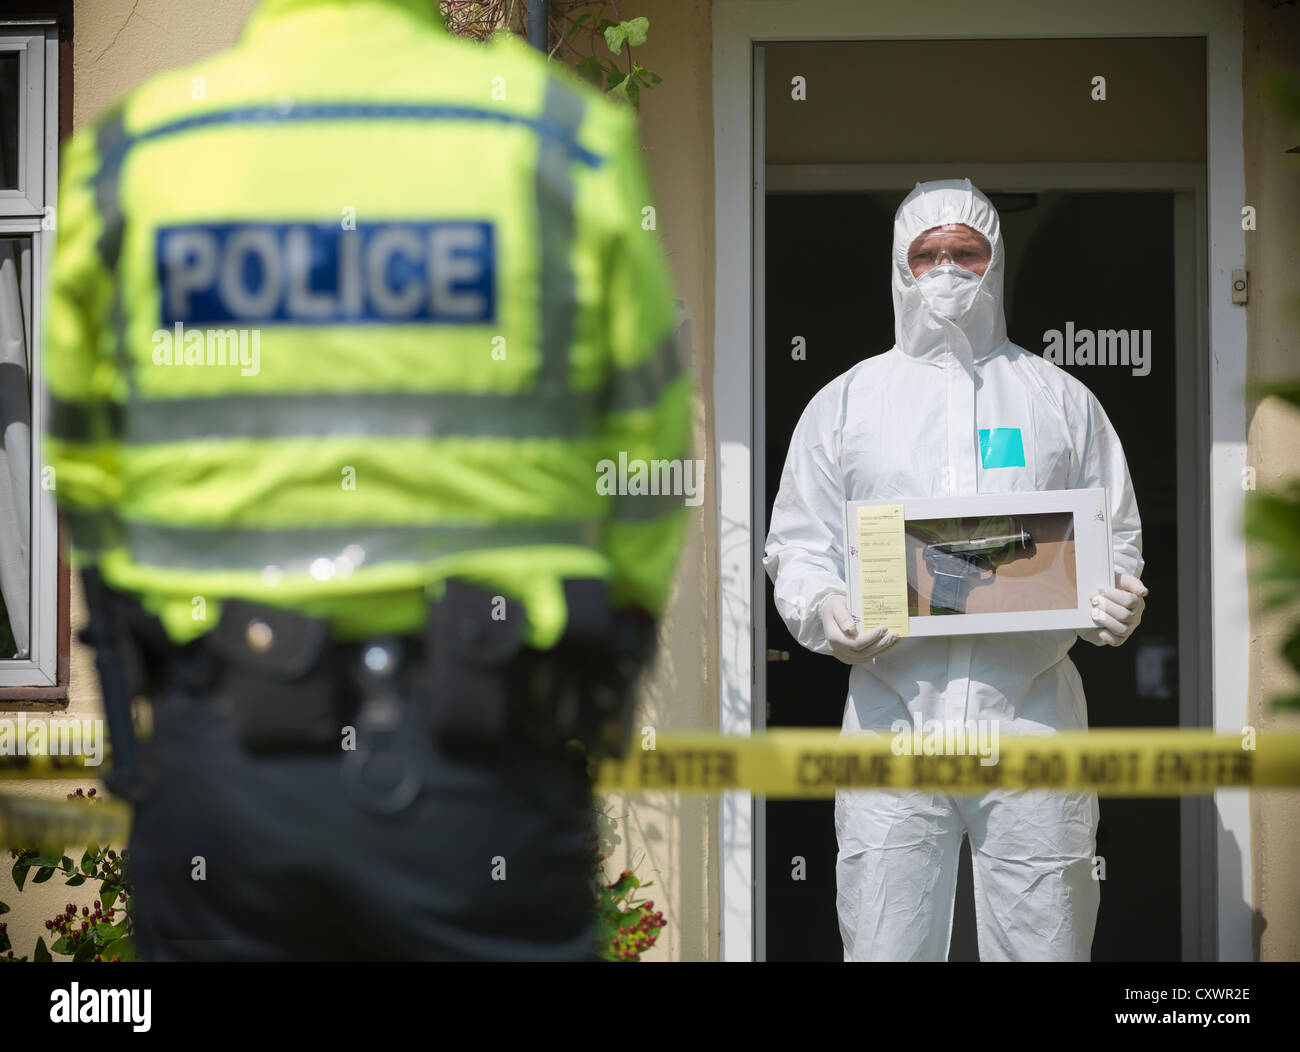 Forensic scientist at crime scene - Stock Image